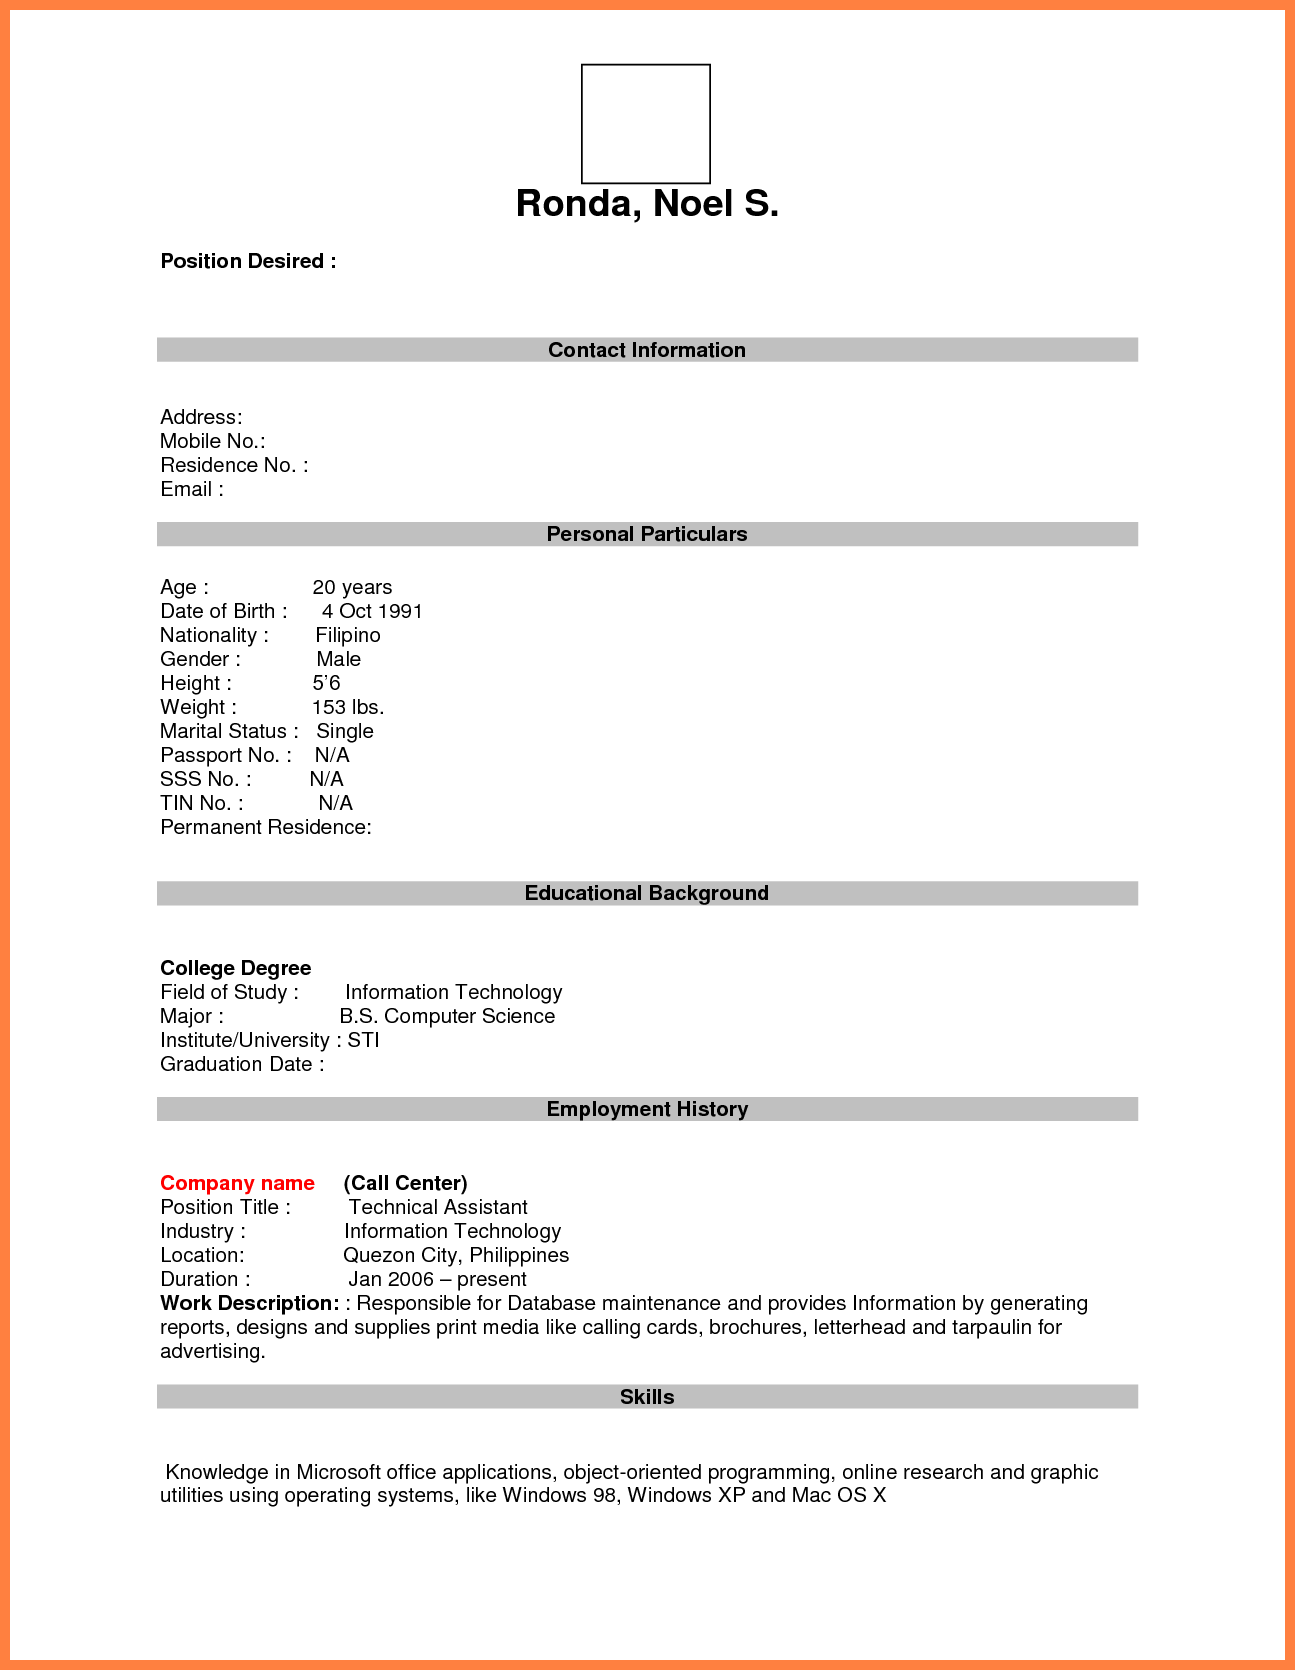 Format For Job Application Pdf Basic Appication Letter Blank Resume Form  Bussines Proposal First Time Free  Blank Resume Template